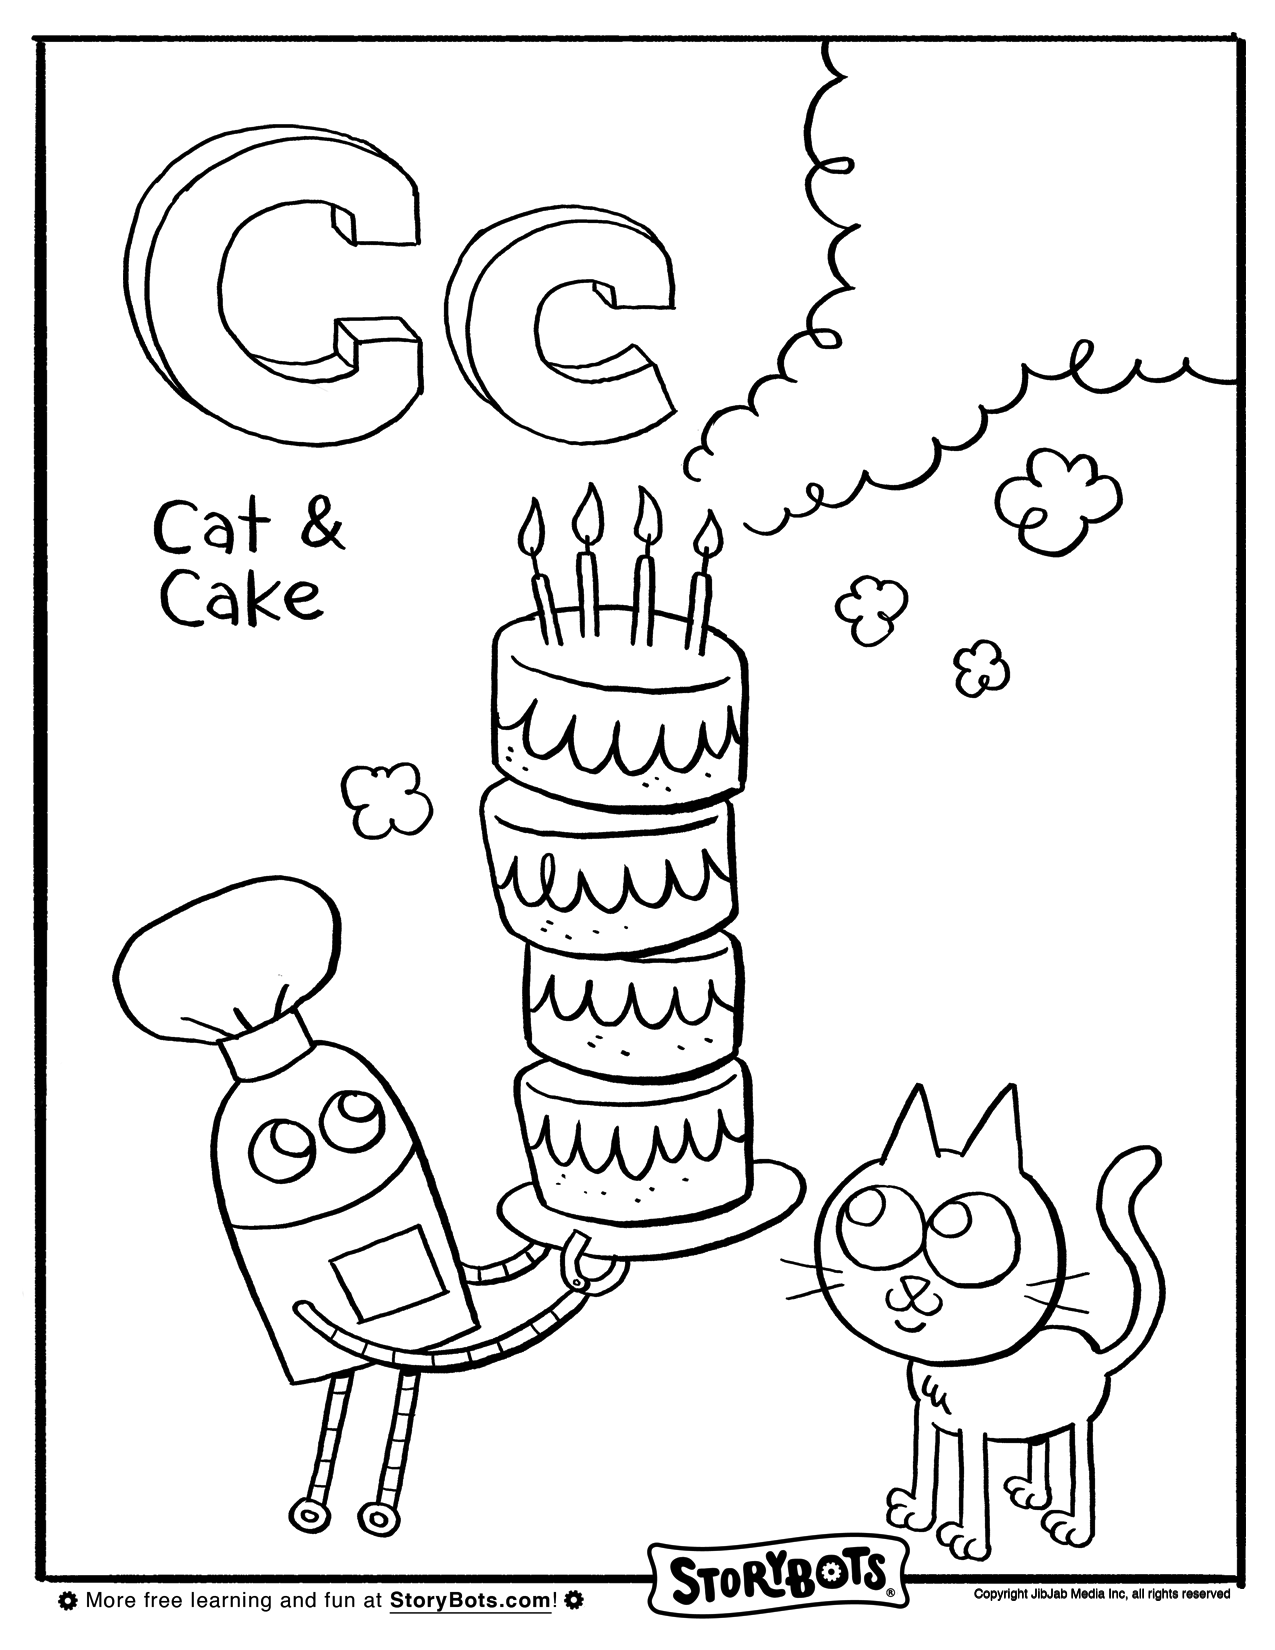 Letter C Storybots Coloring Pages